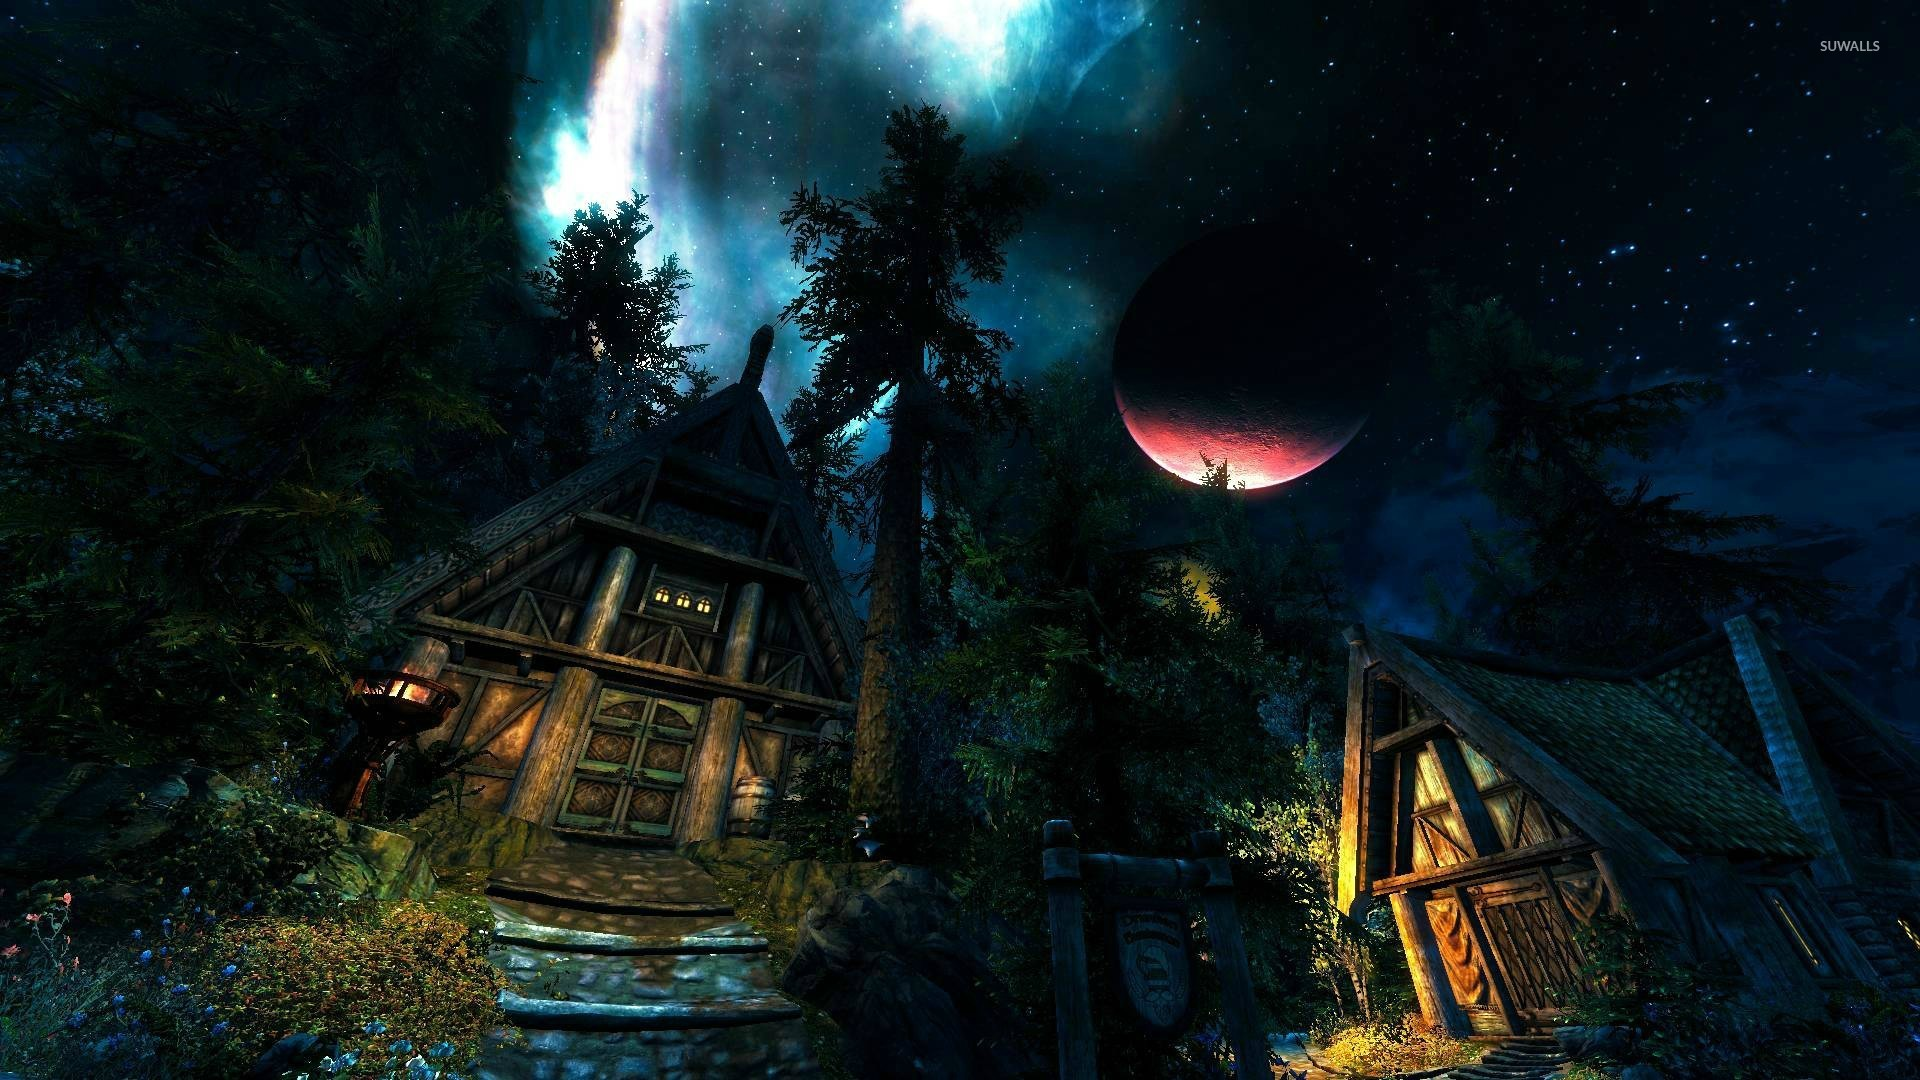 Hut in the forest in The Elder Scrolls V: Skyrim wallpaper